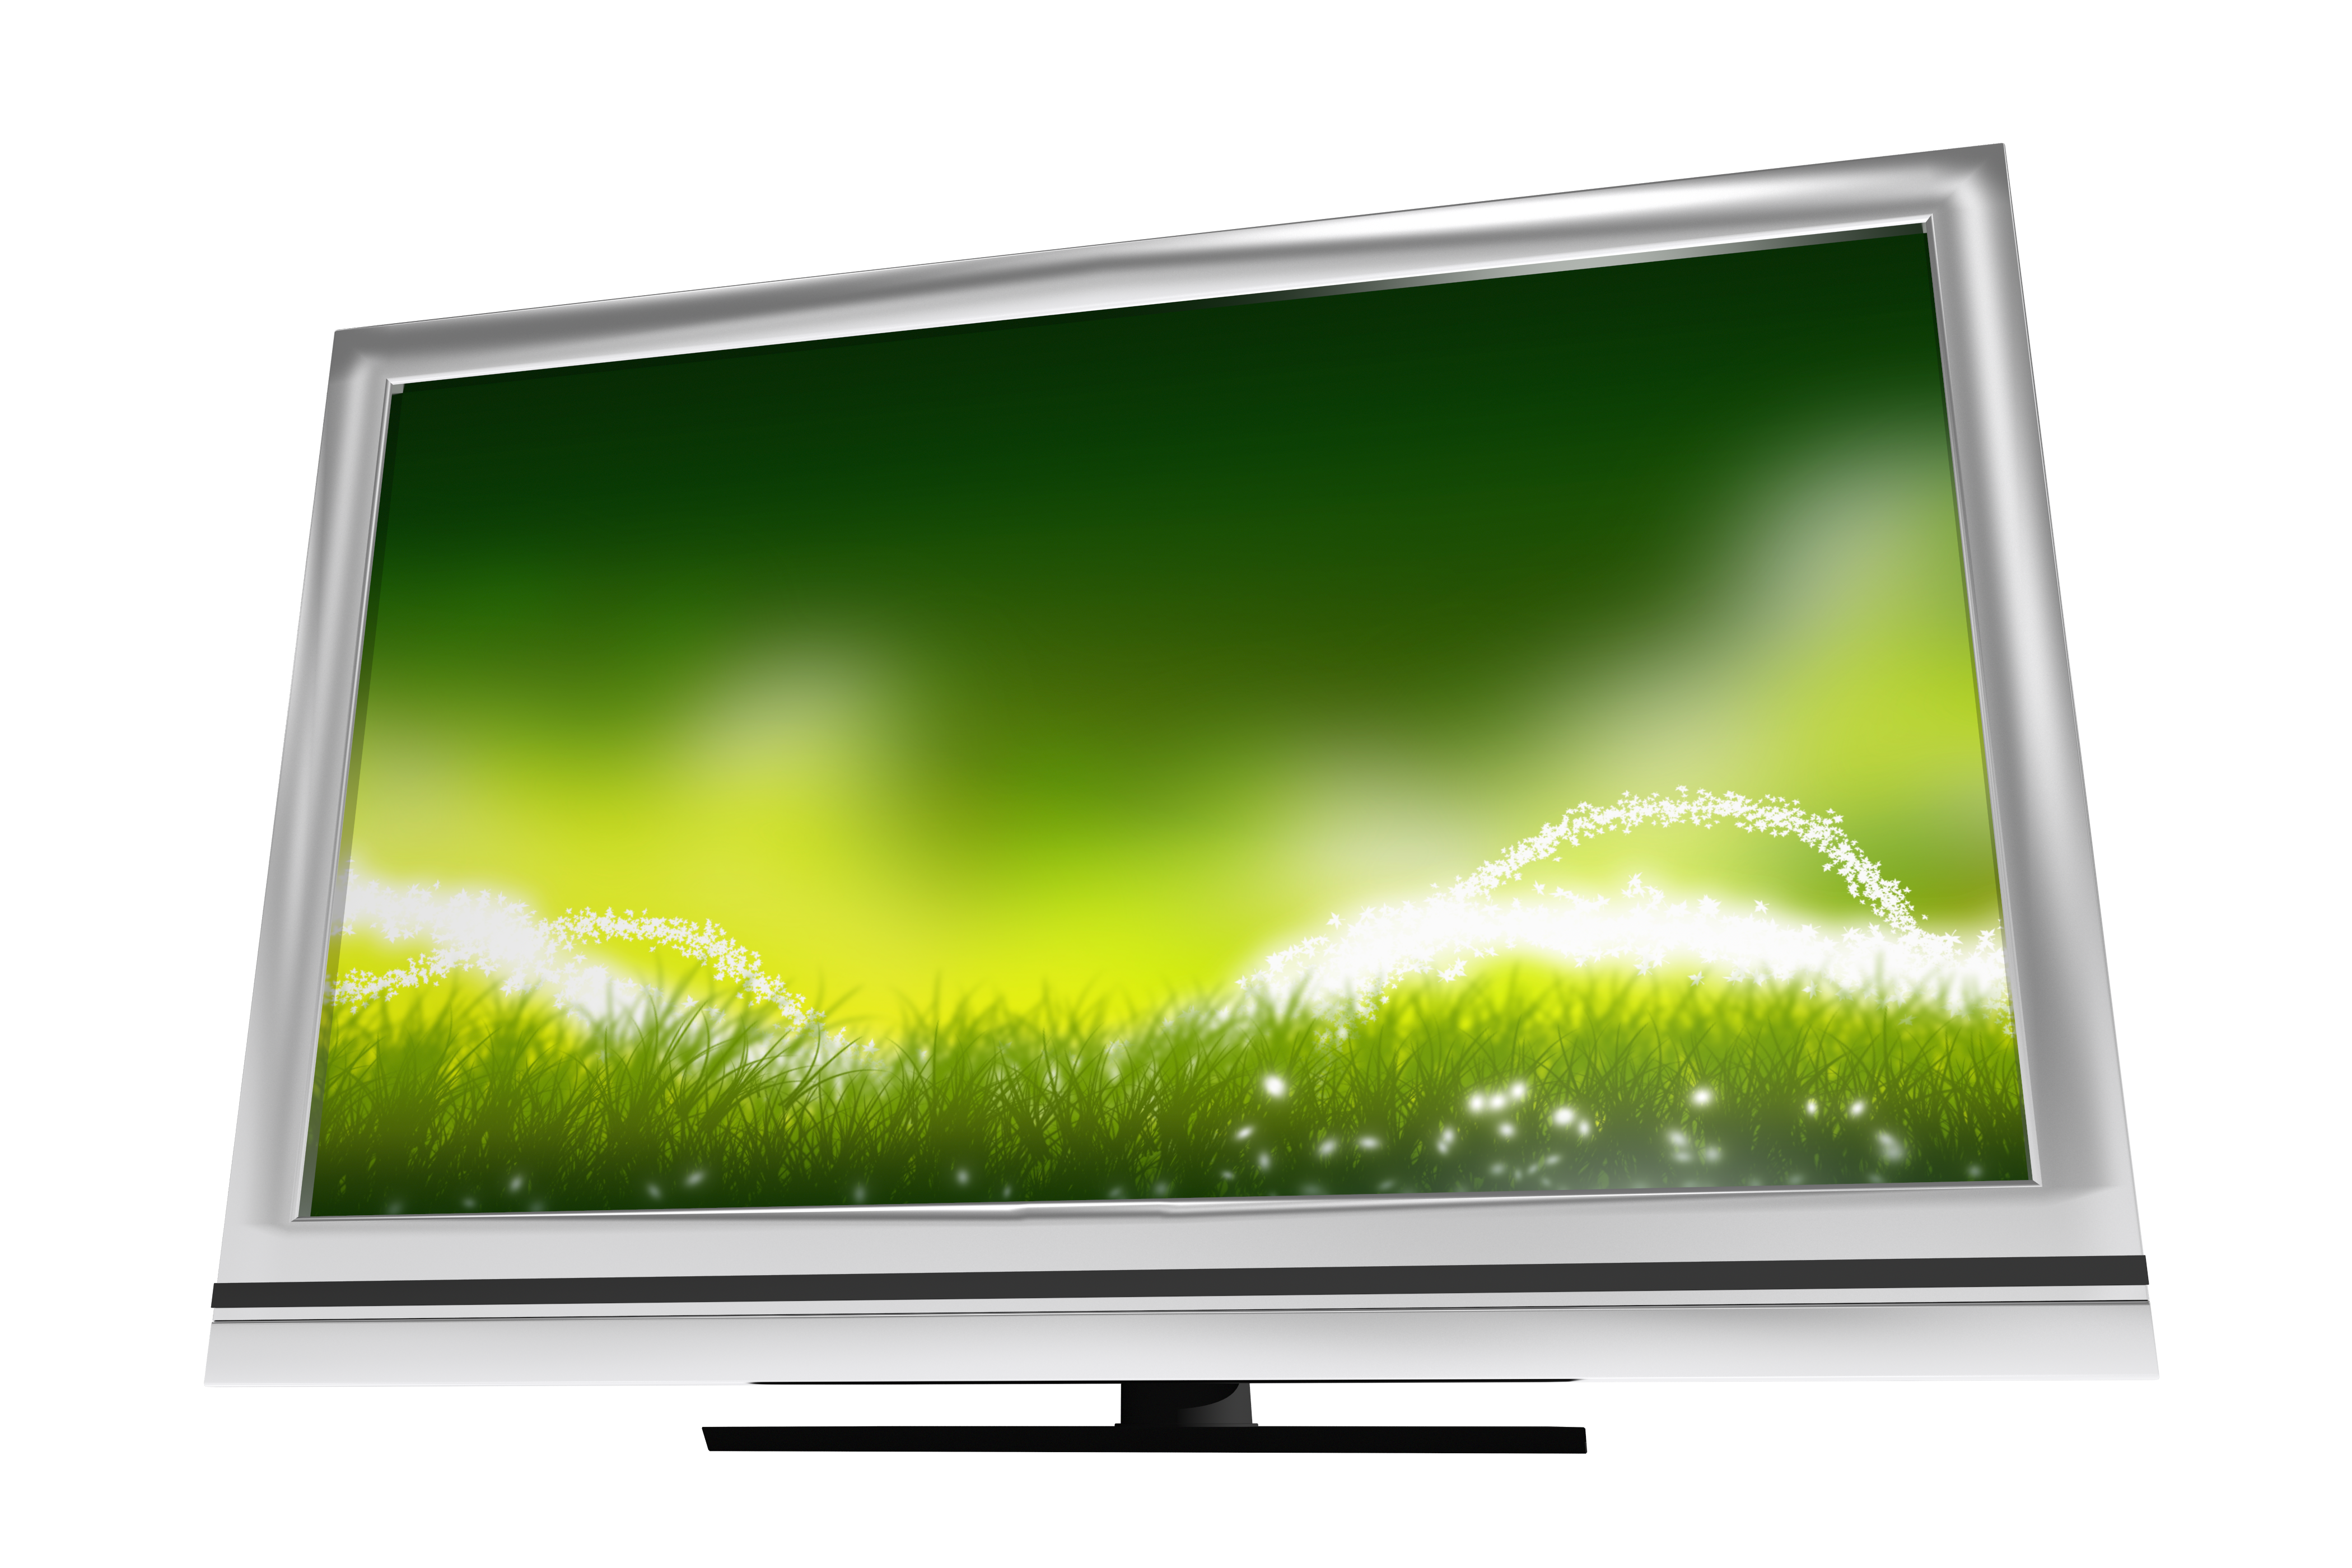 Grass on Computer Screen in an Article About Broadband for Rural Areas Grant